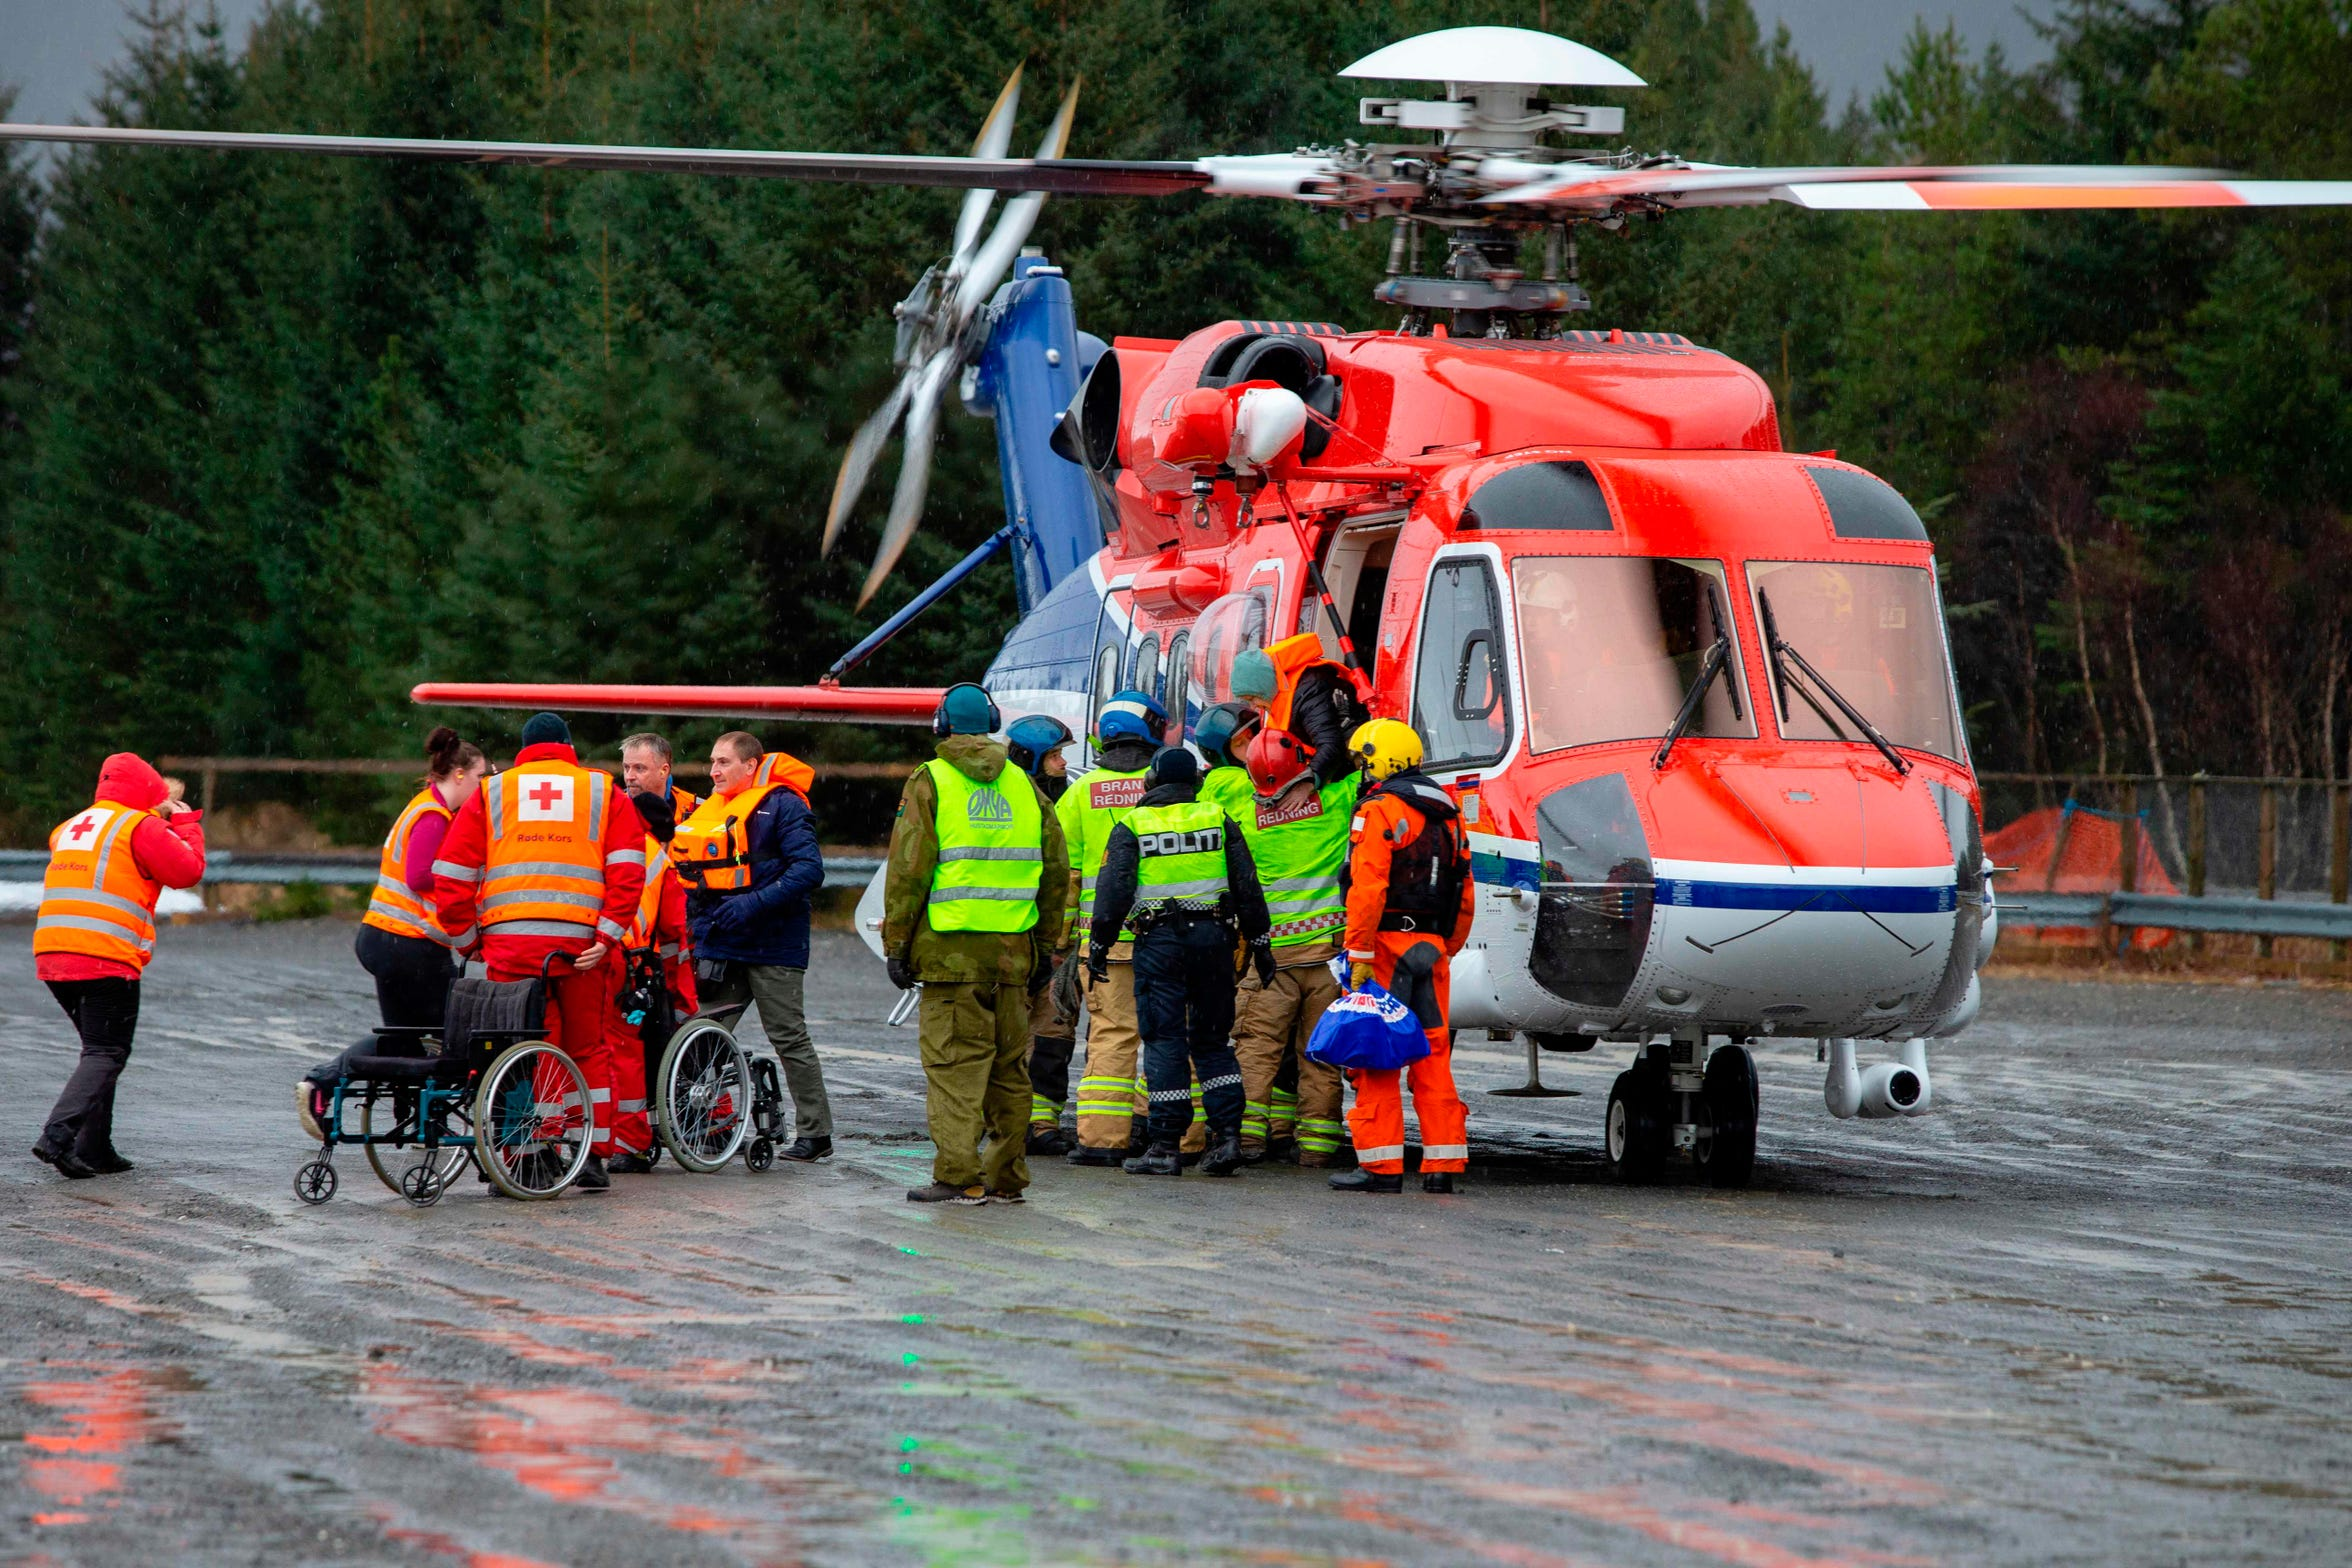 Rescuers wait to assist passengers airlifted by helicopter from the cruise ship Viking Sky on March 24, 2019 off the west coast of Norway.